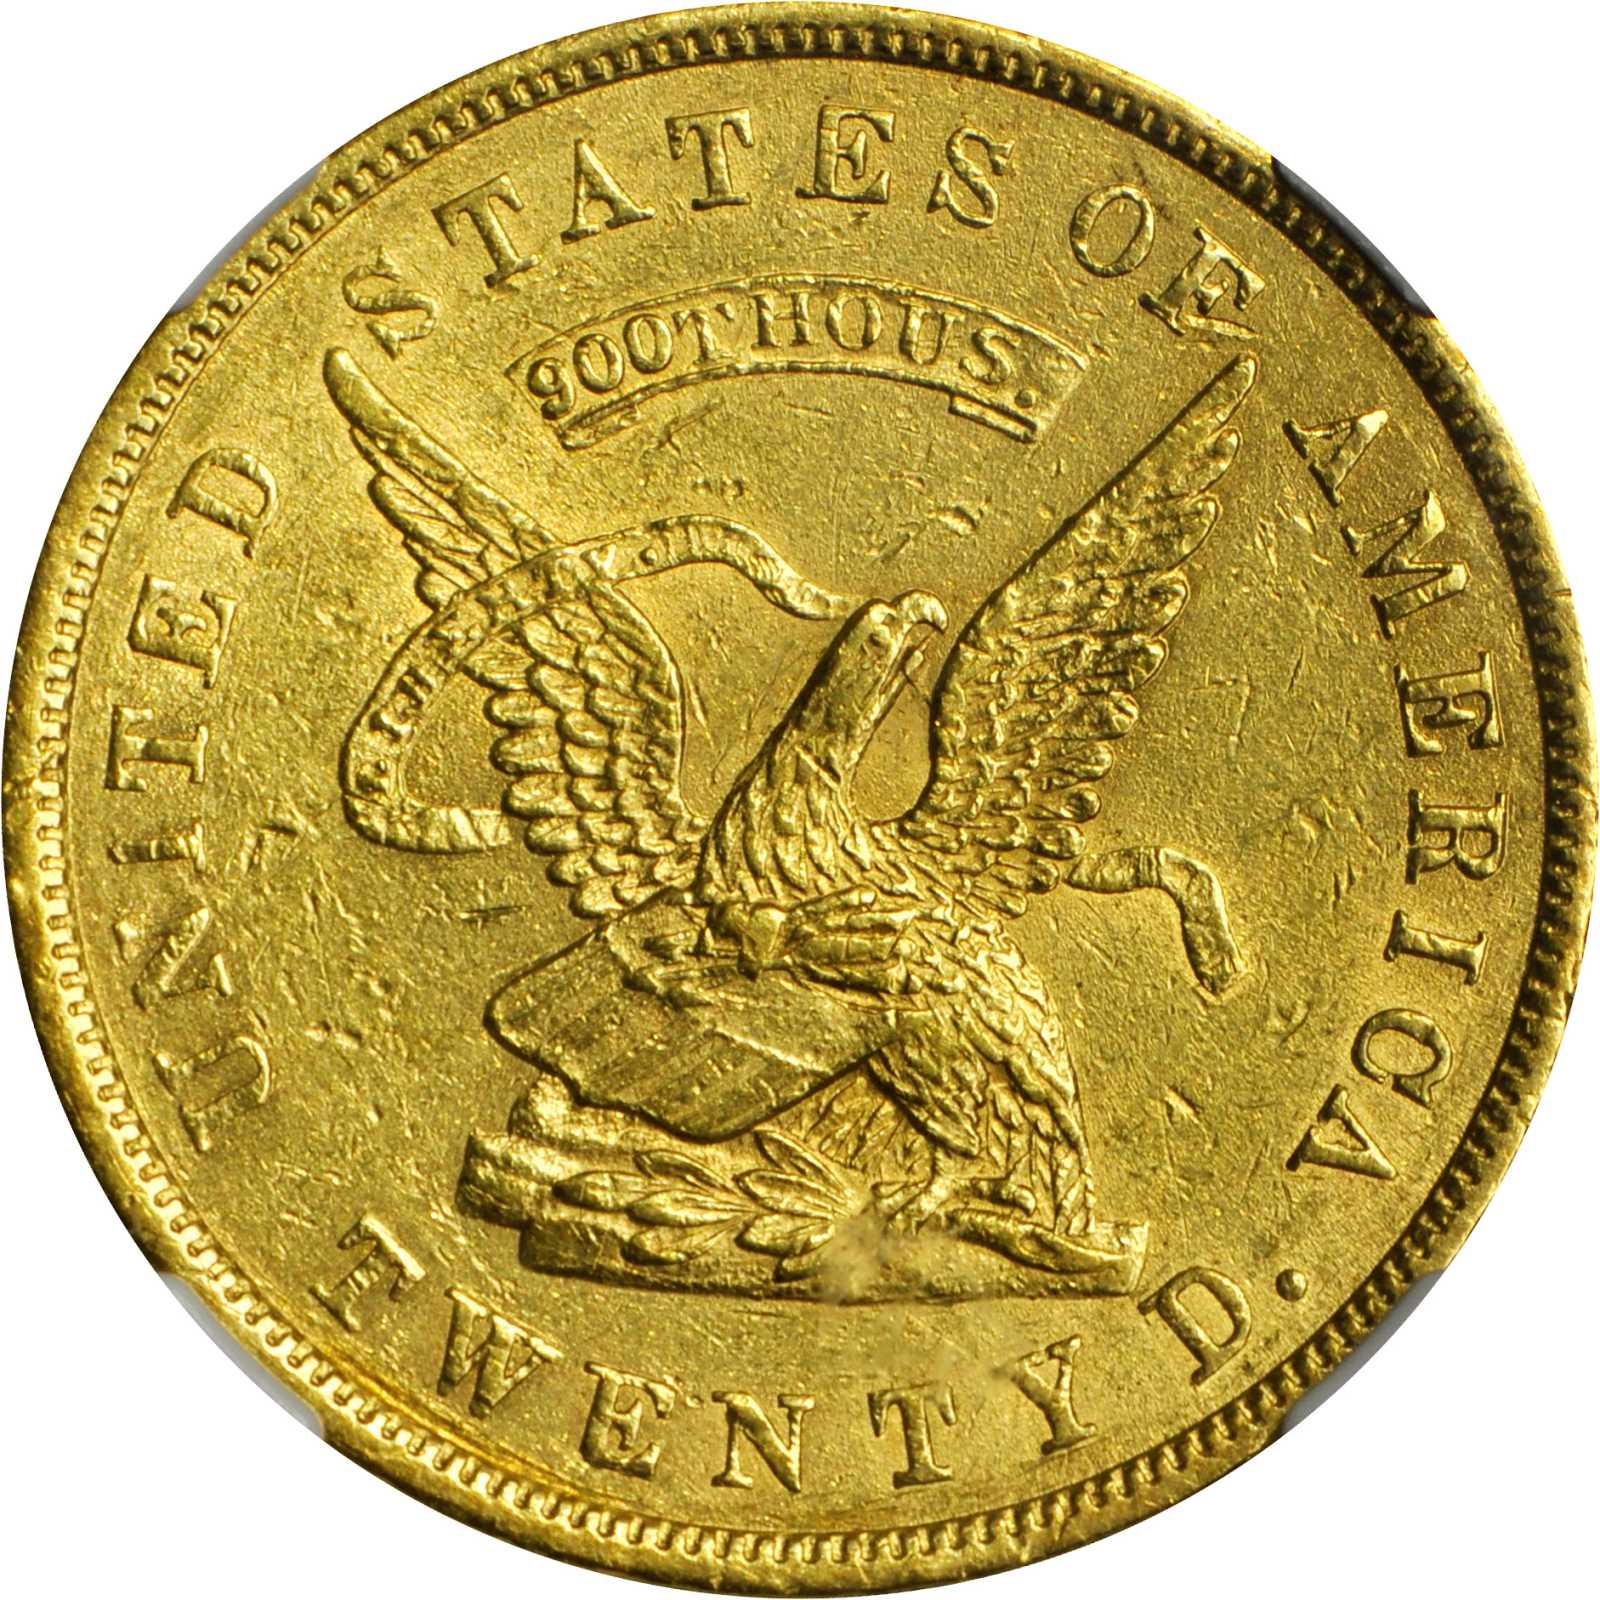 sample image for Assay $20 Proof, 900 THOUS